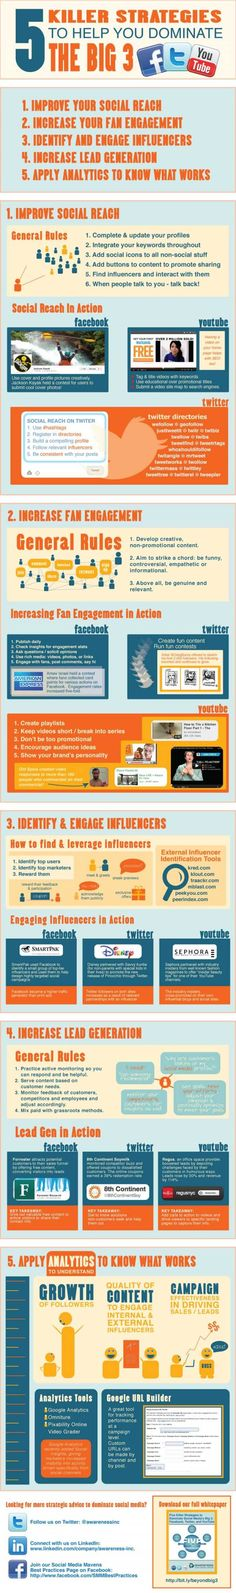 How-to-Dominate-Facebook-Twitter-YouTube-Infographic